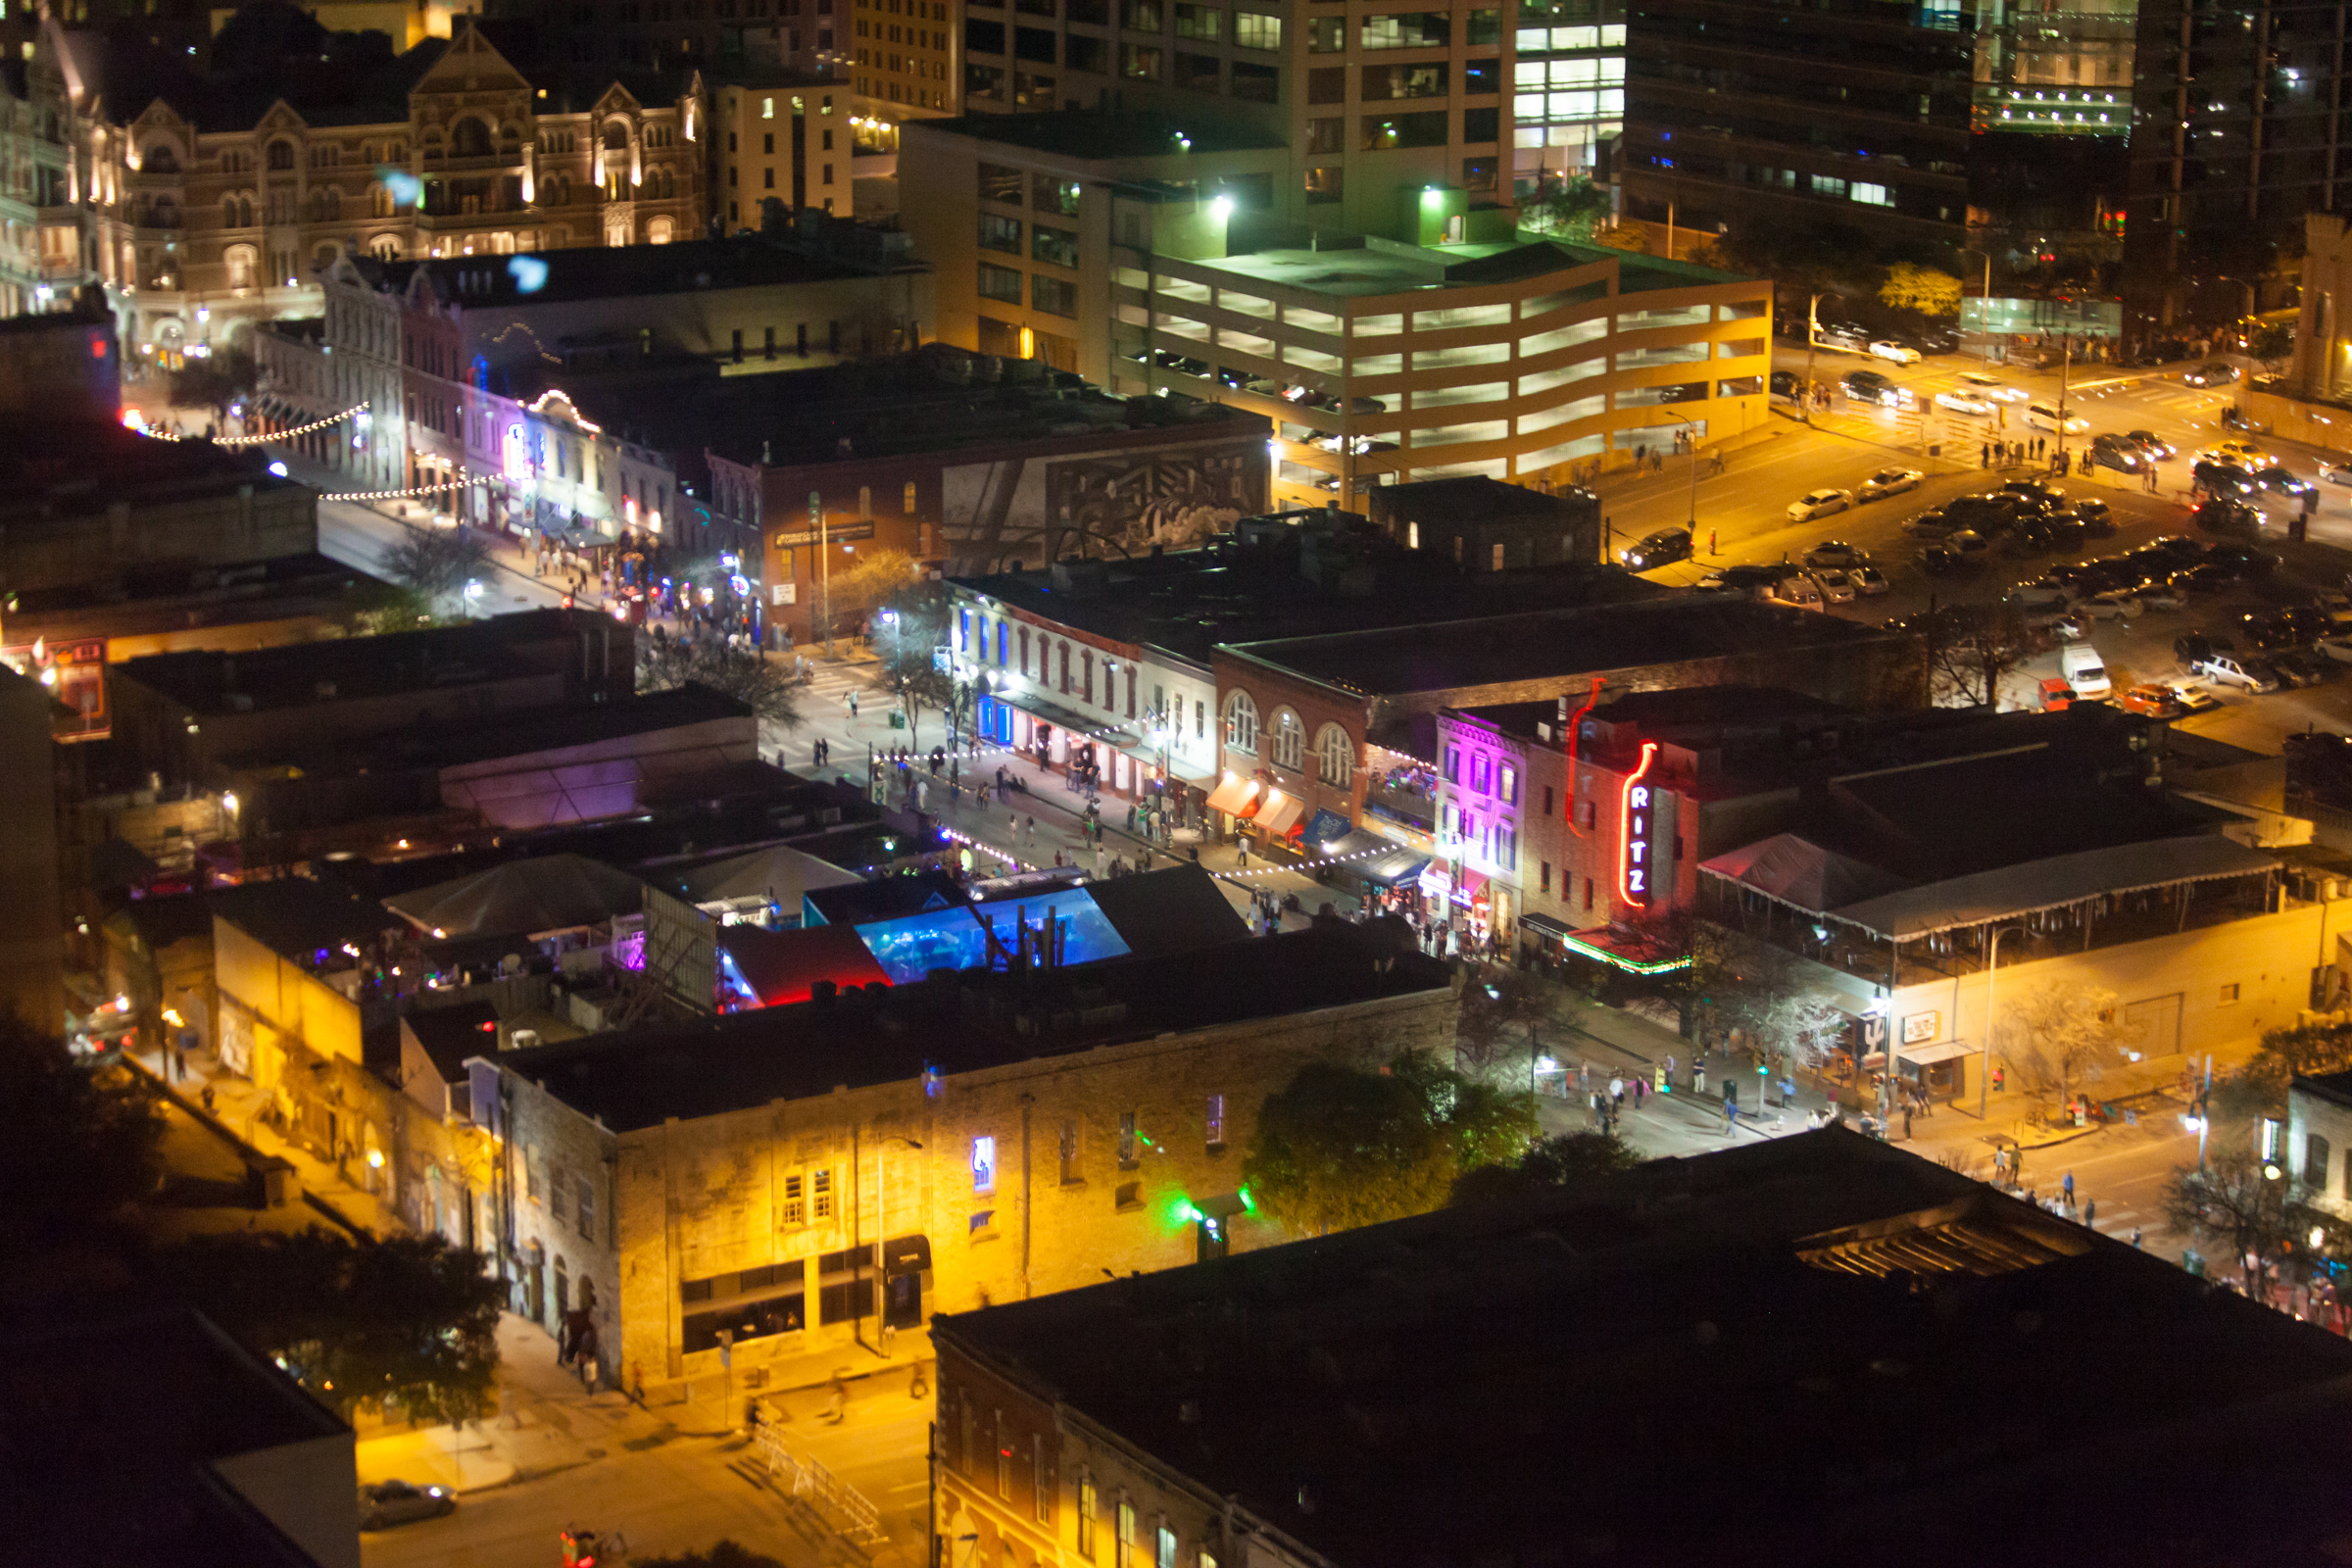 SXSW 2015 by Tendenci